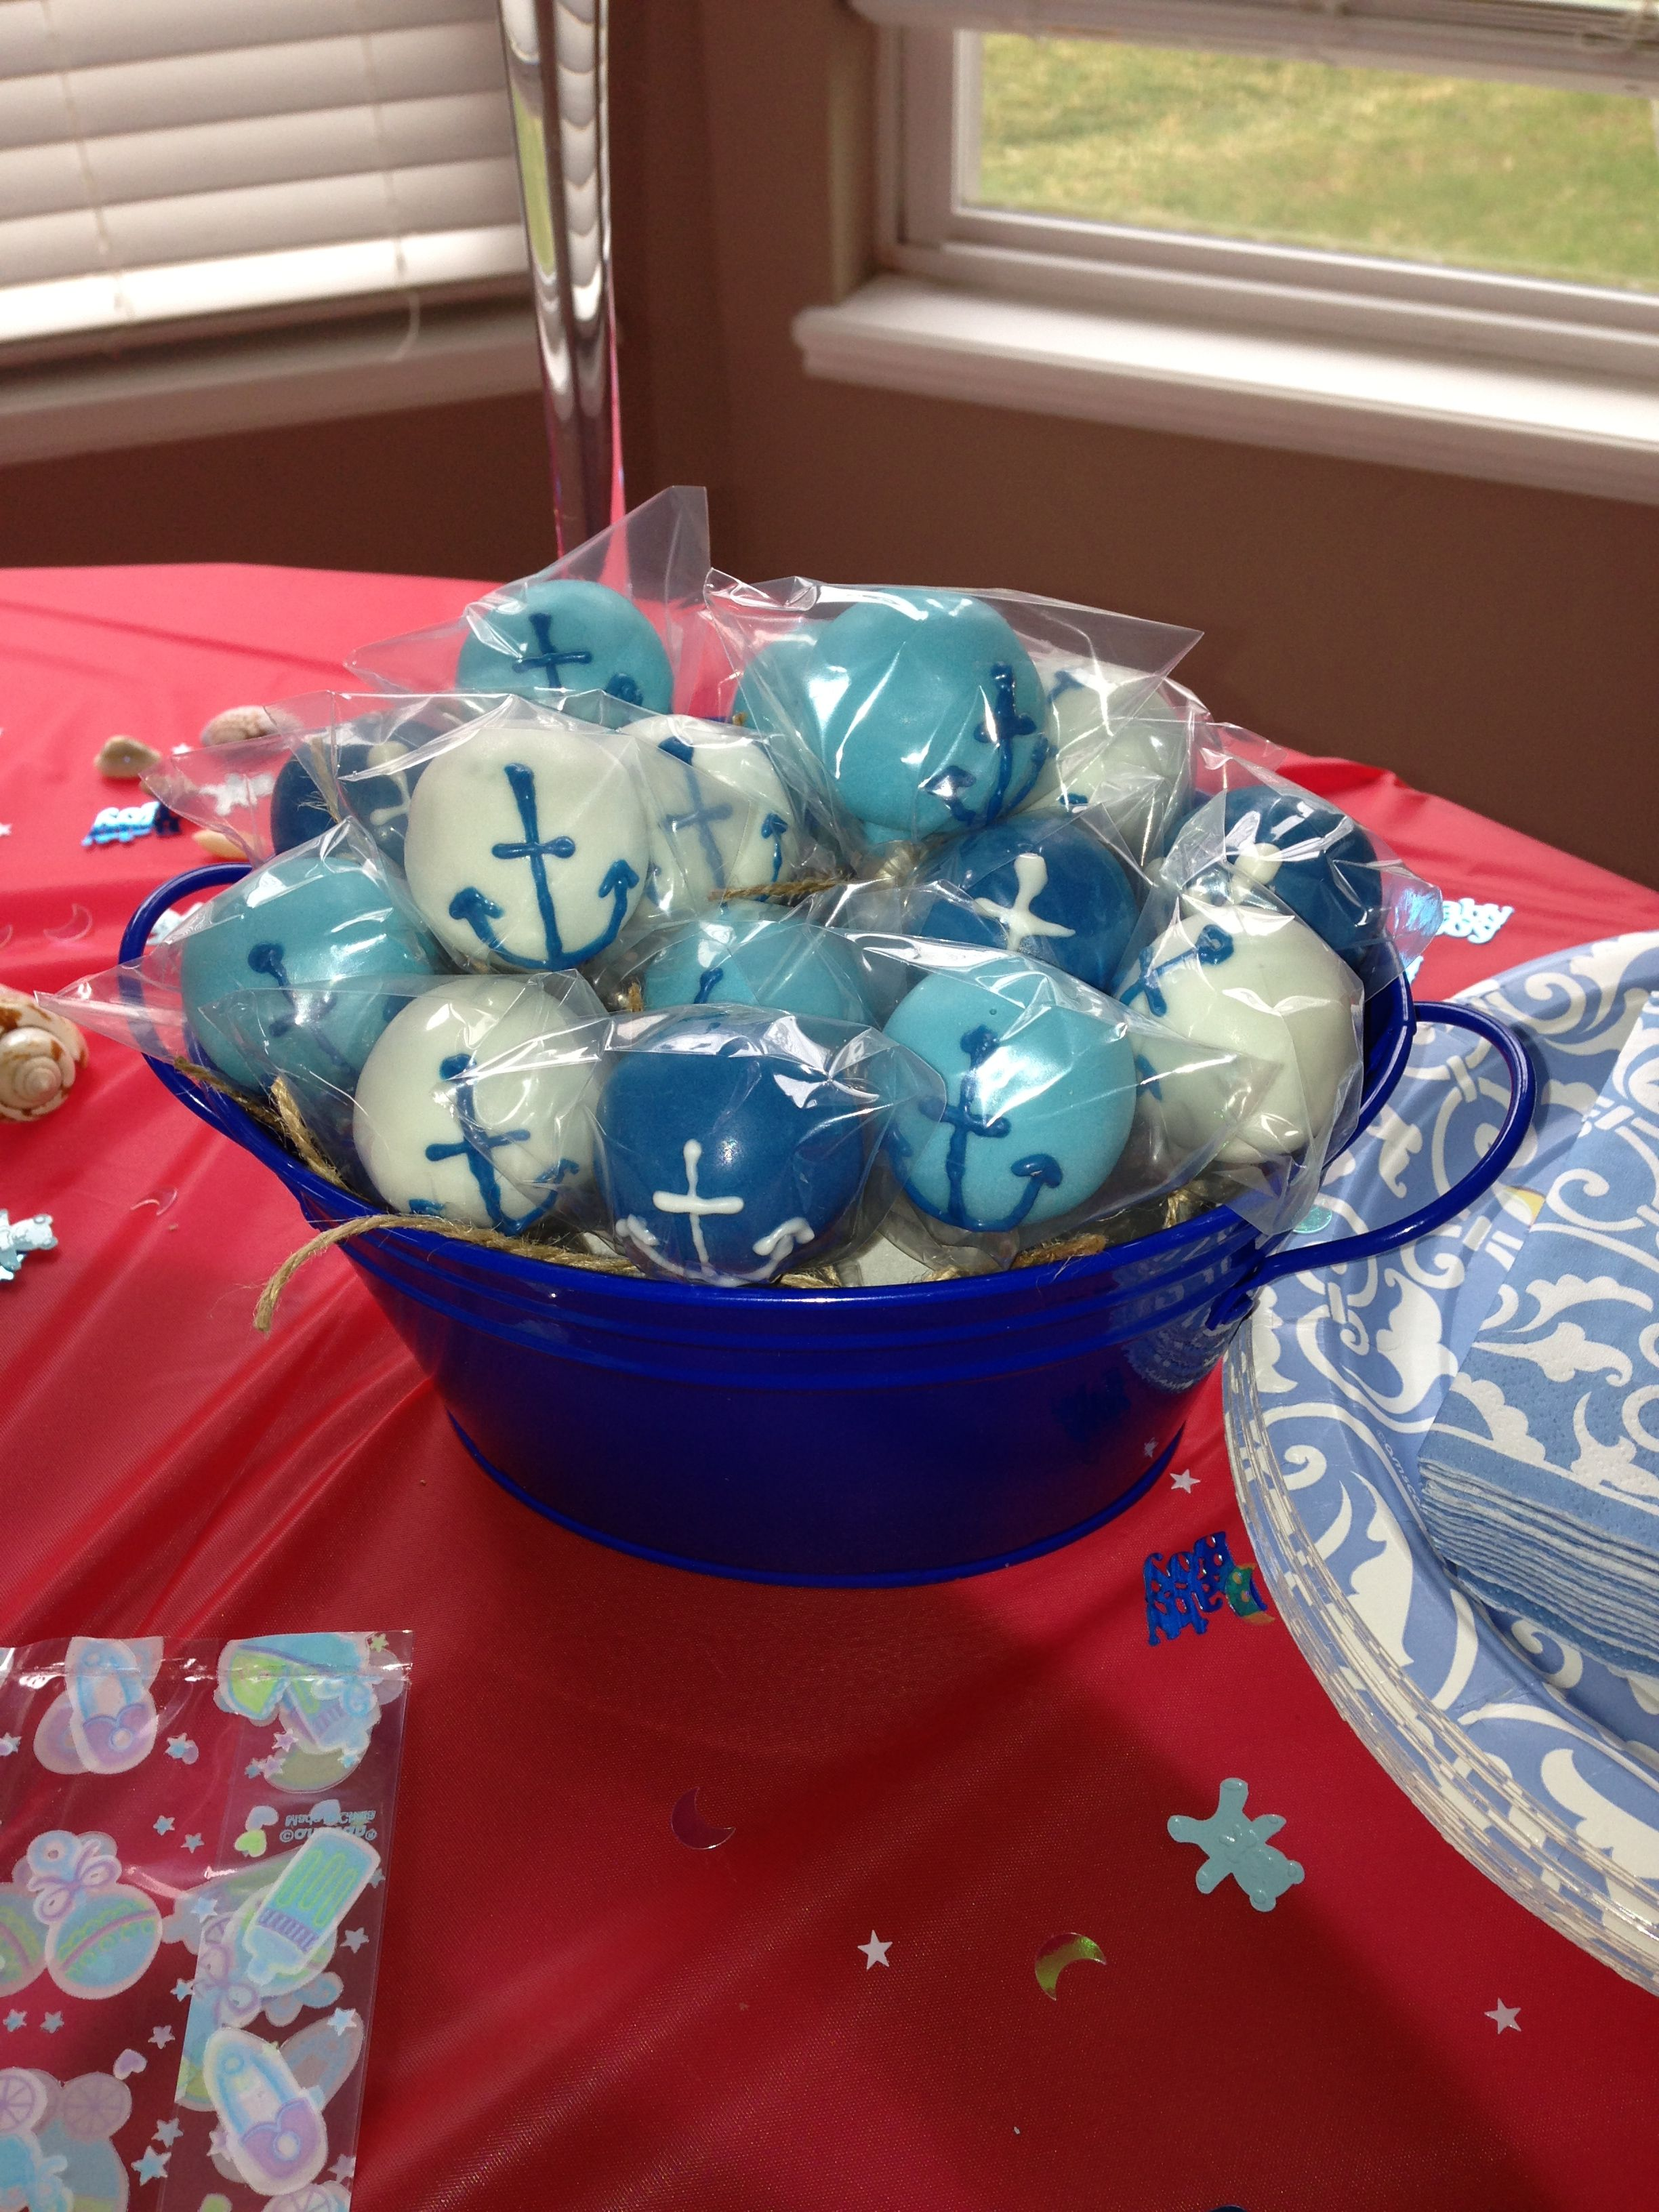 Gmail blue theme - Nautical Theme Cakepops Created By C R Pops Columbus Ohio Crpops12 Gmail